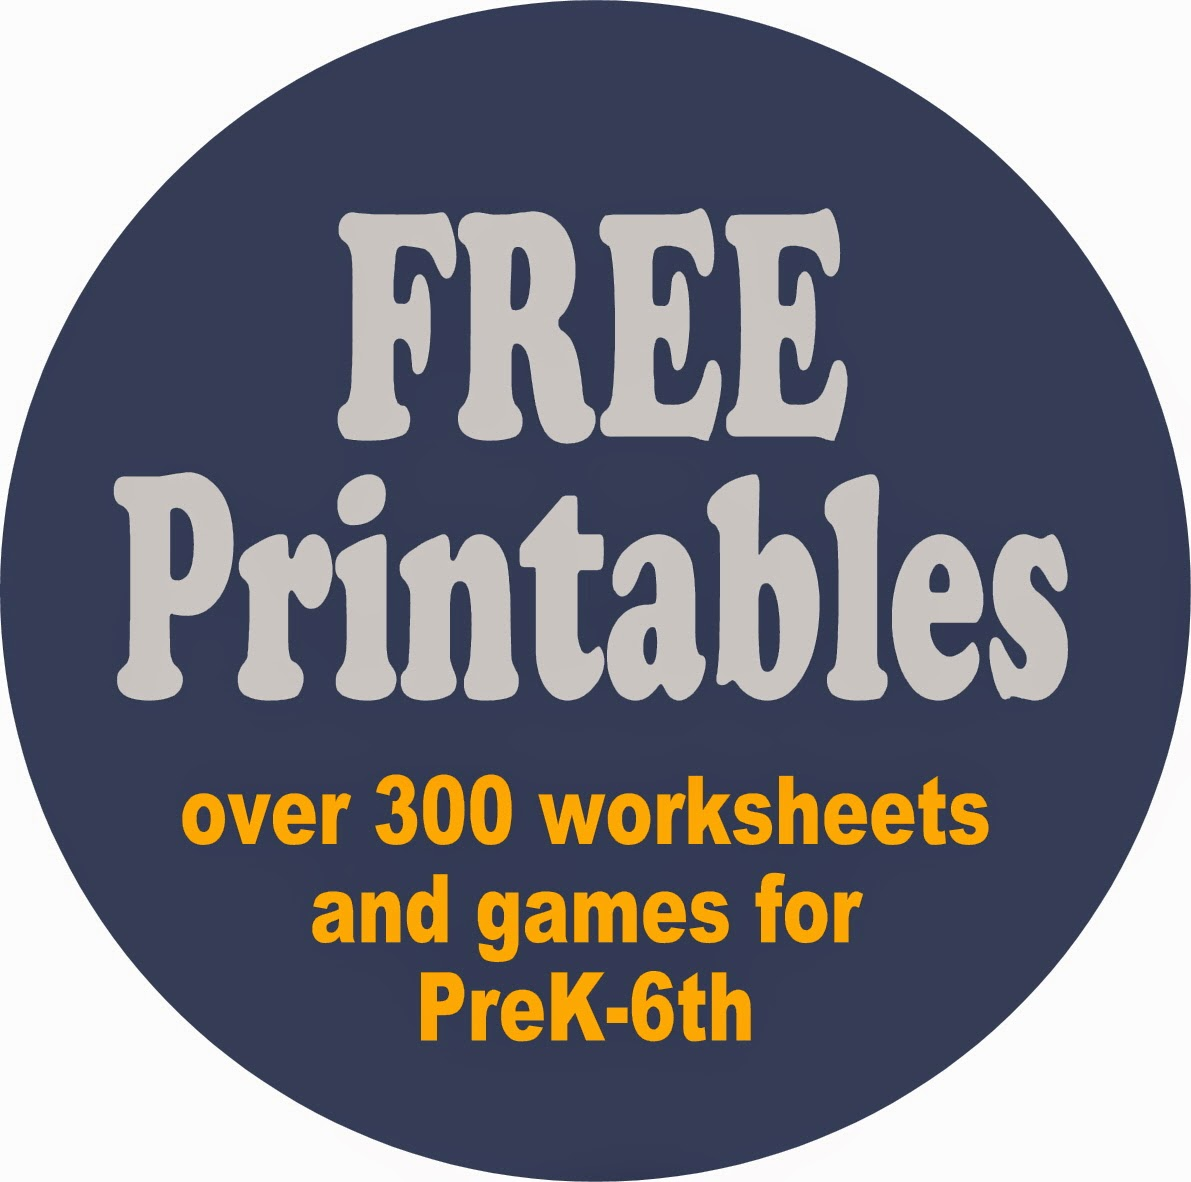 worksheets for kids - over 300 worksheets, games, lapbooks, and units for kids